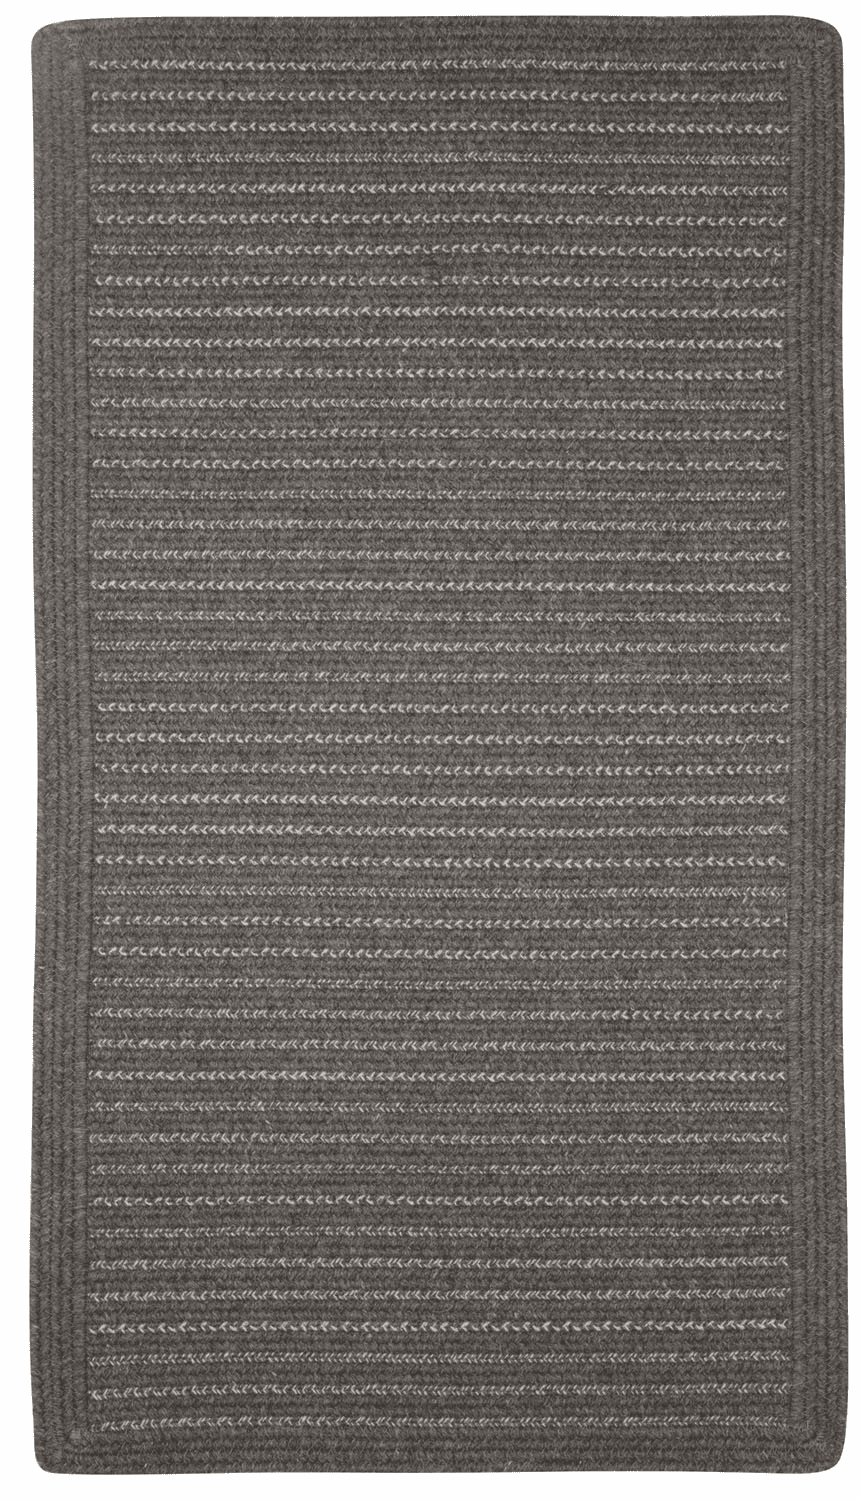 Hand-Braided Brown Rug